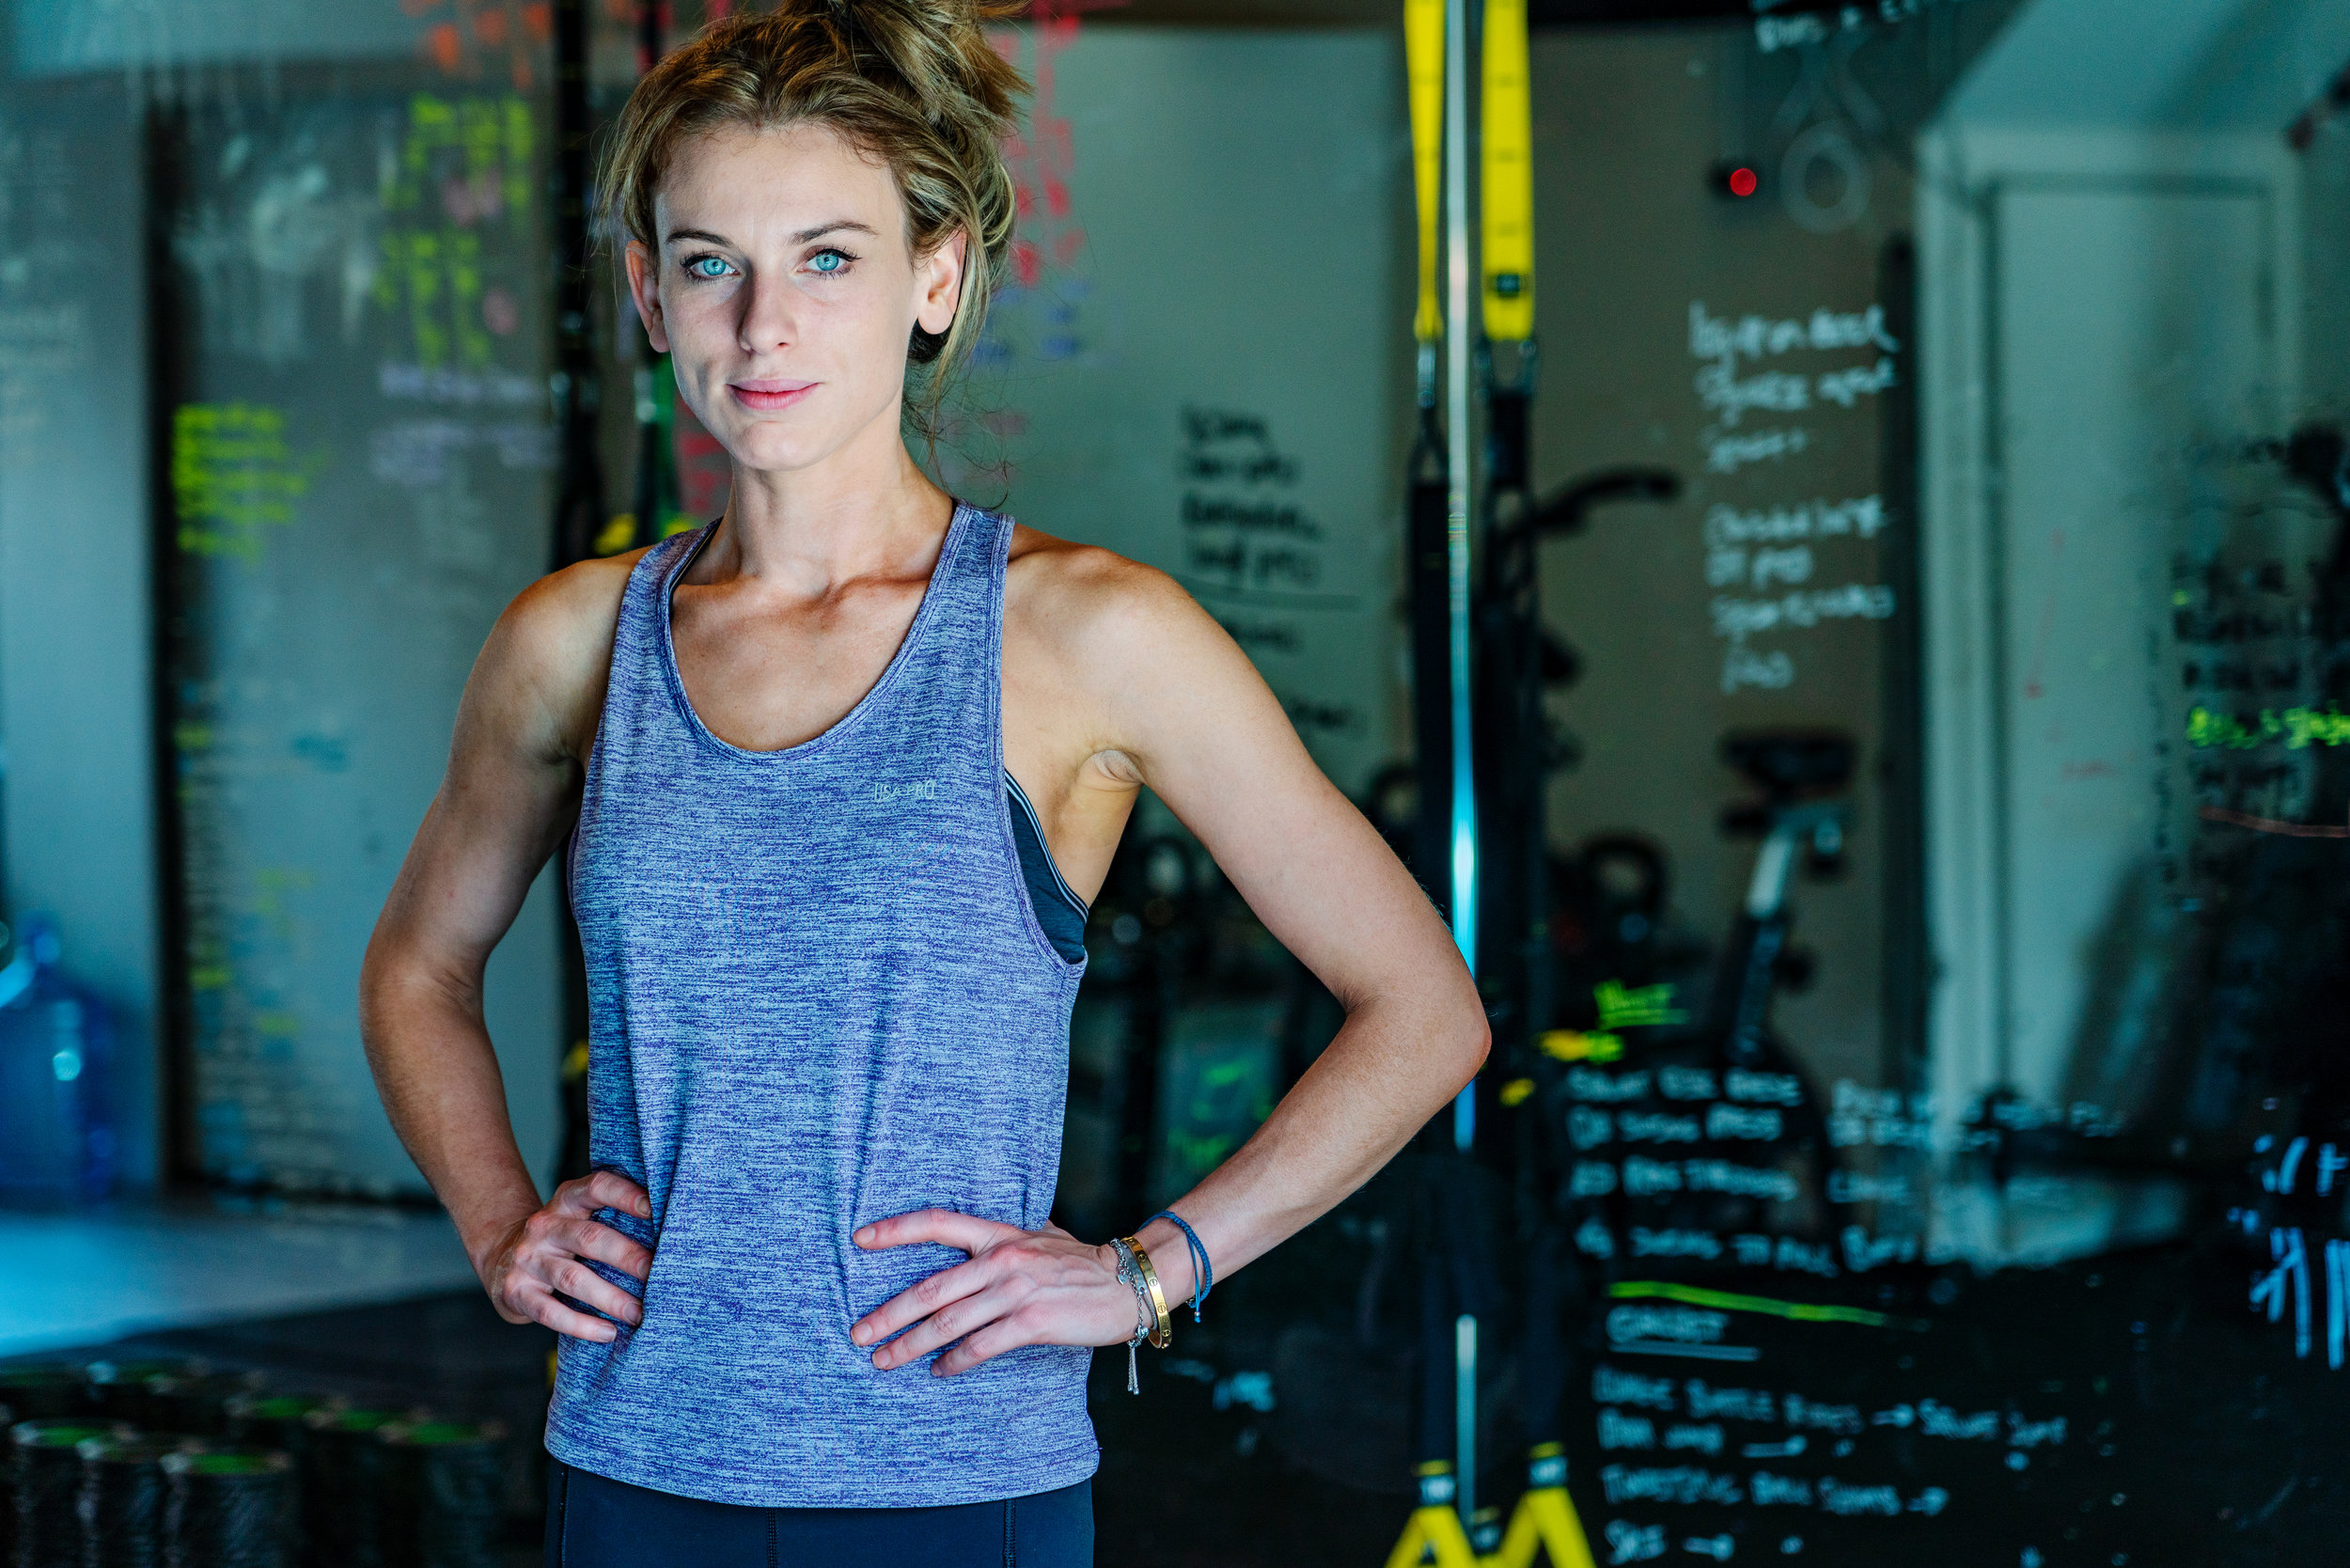 Jessica Becker - HIIT Coach at Sw3at Studio